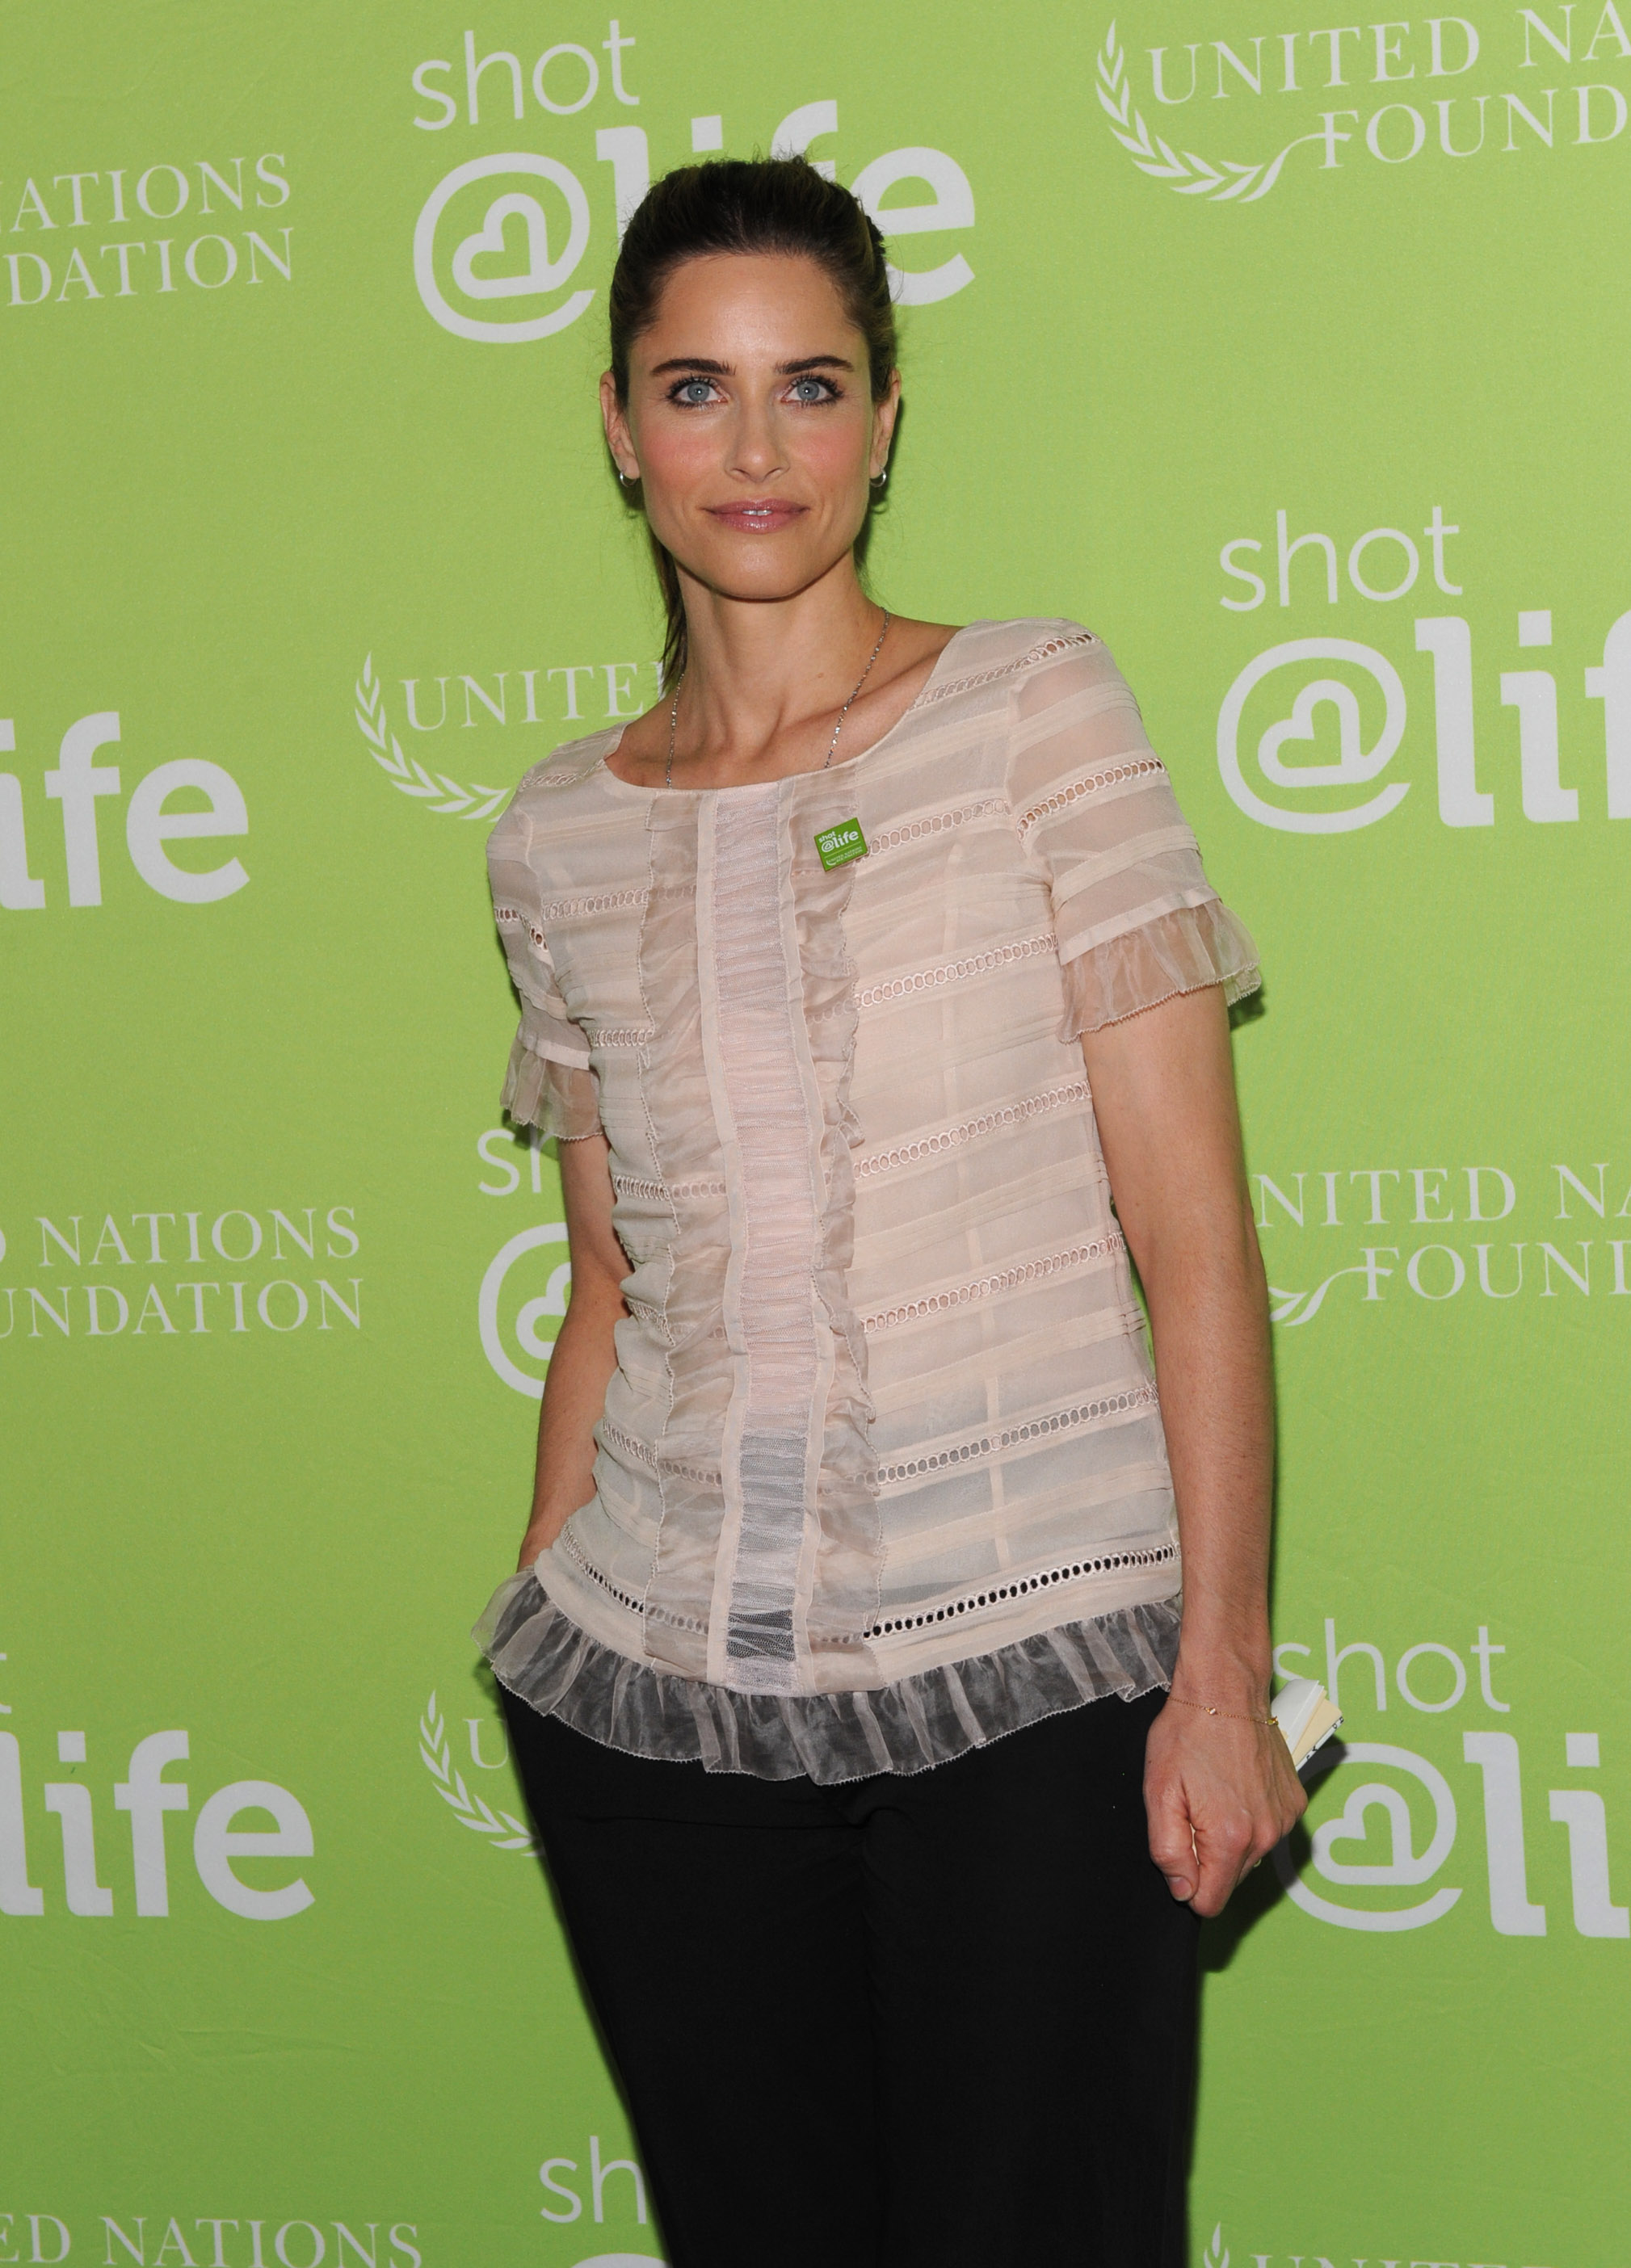 Actor, mother and Every Child By Two Vaccine Ambassador Amanda Peet joins the Shot@Life campaign to advocate for global vaccine access and help mothers in developing countries protect their children from deadly diseases with life-saving vaccines. (Photo by Diane Bondareff for UN Foundation)